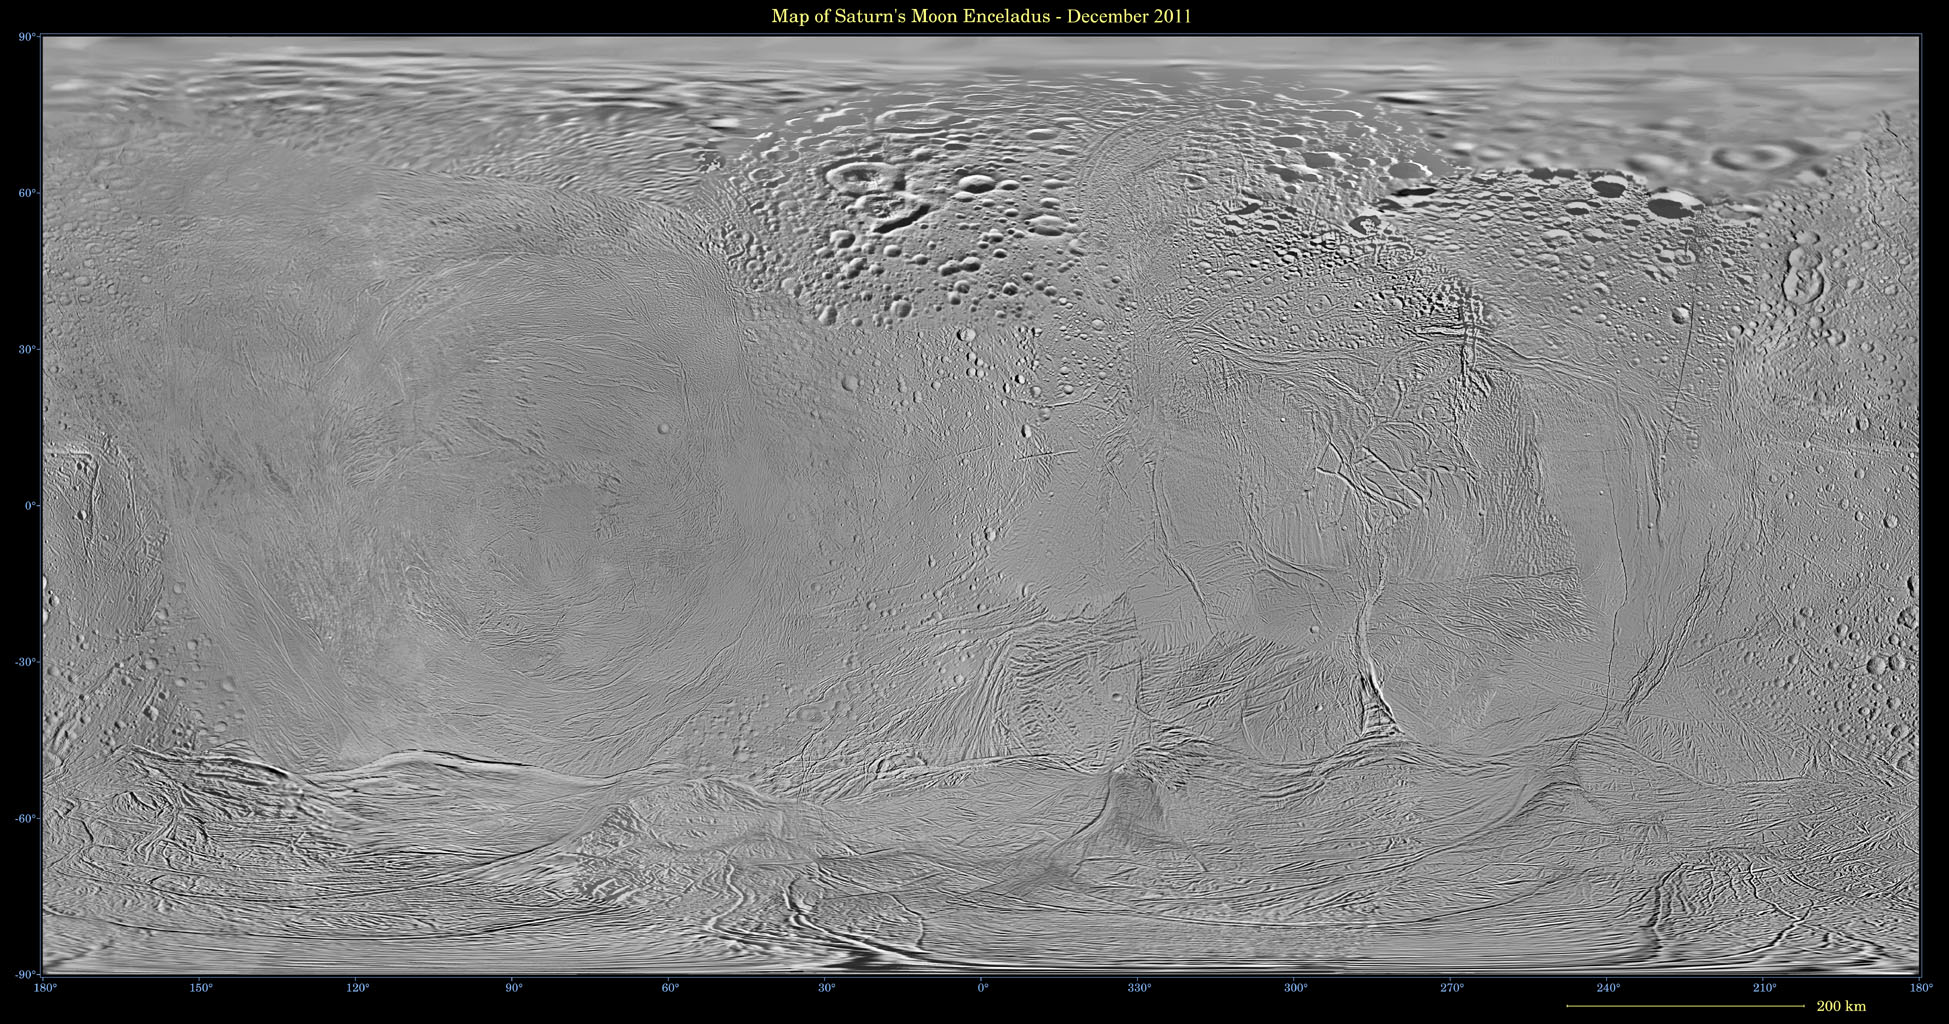 This mosaic shows an updated global map of Saturn's icy moon Enceladus, created using images taken during flybys of NASA's Cassini spacecraft. The map incorporates new images taken during flybys in December 2011.